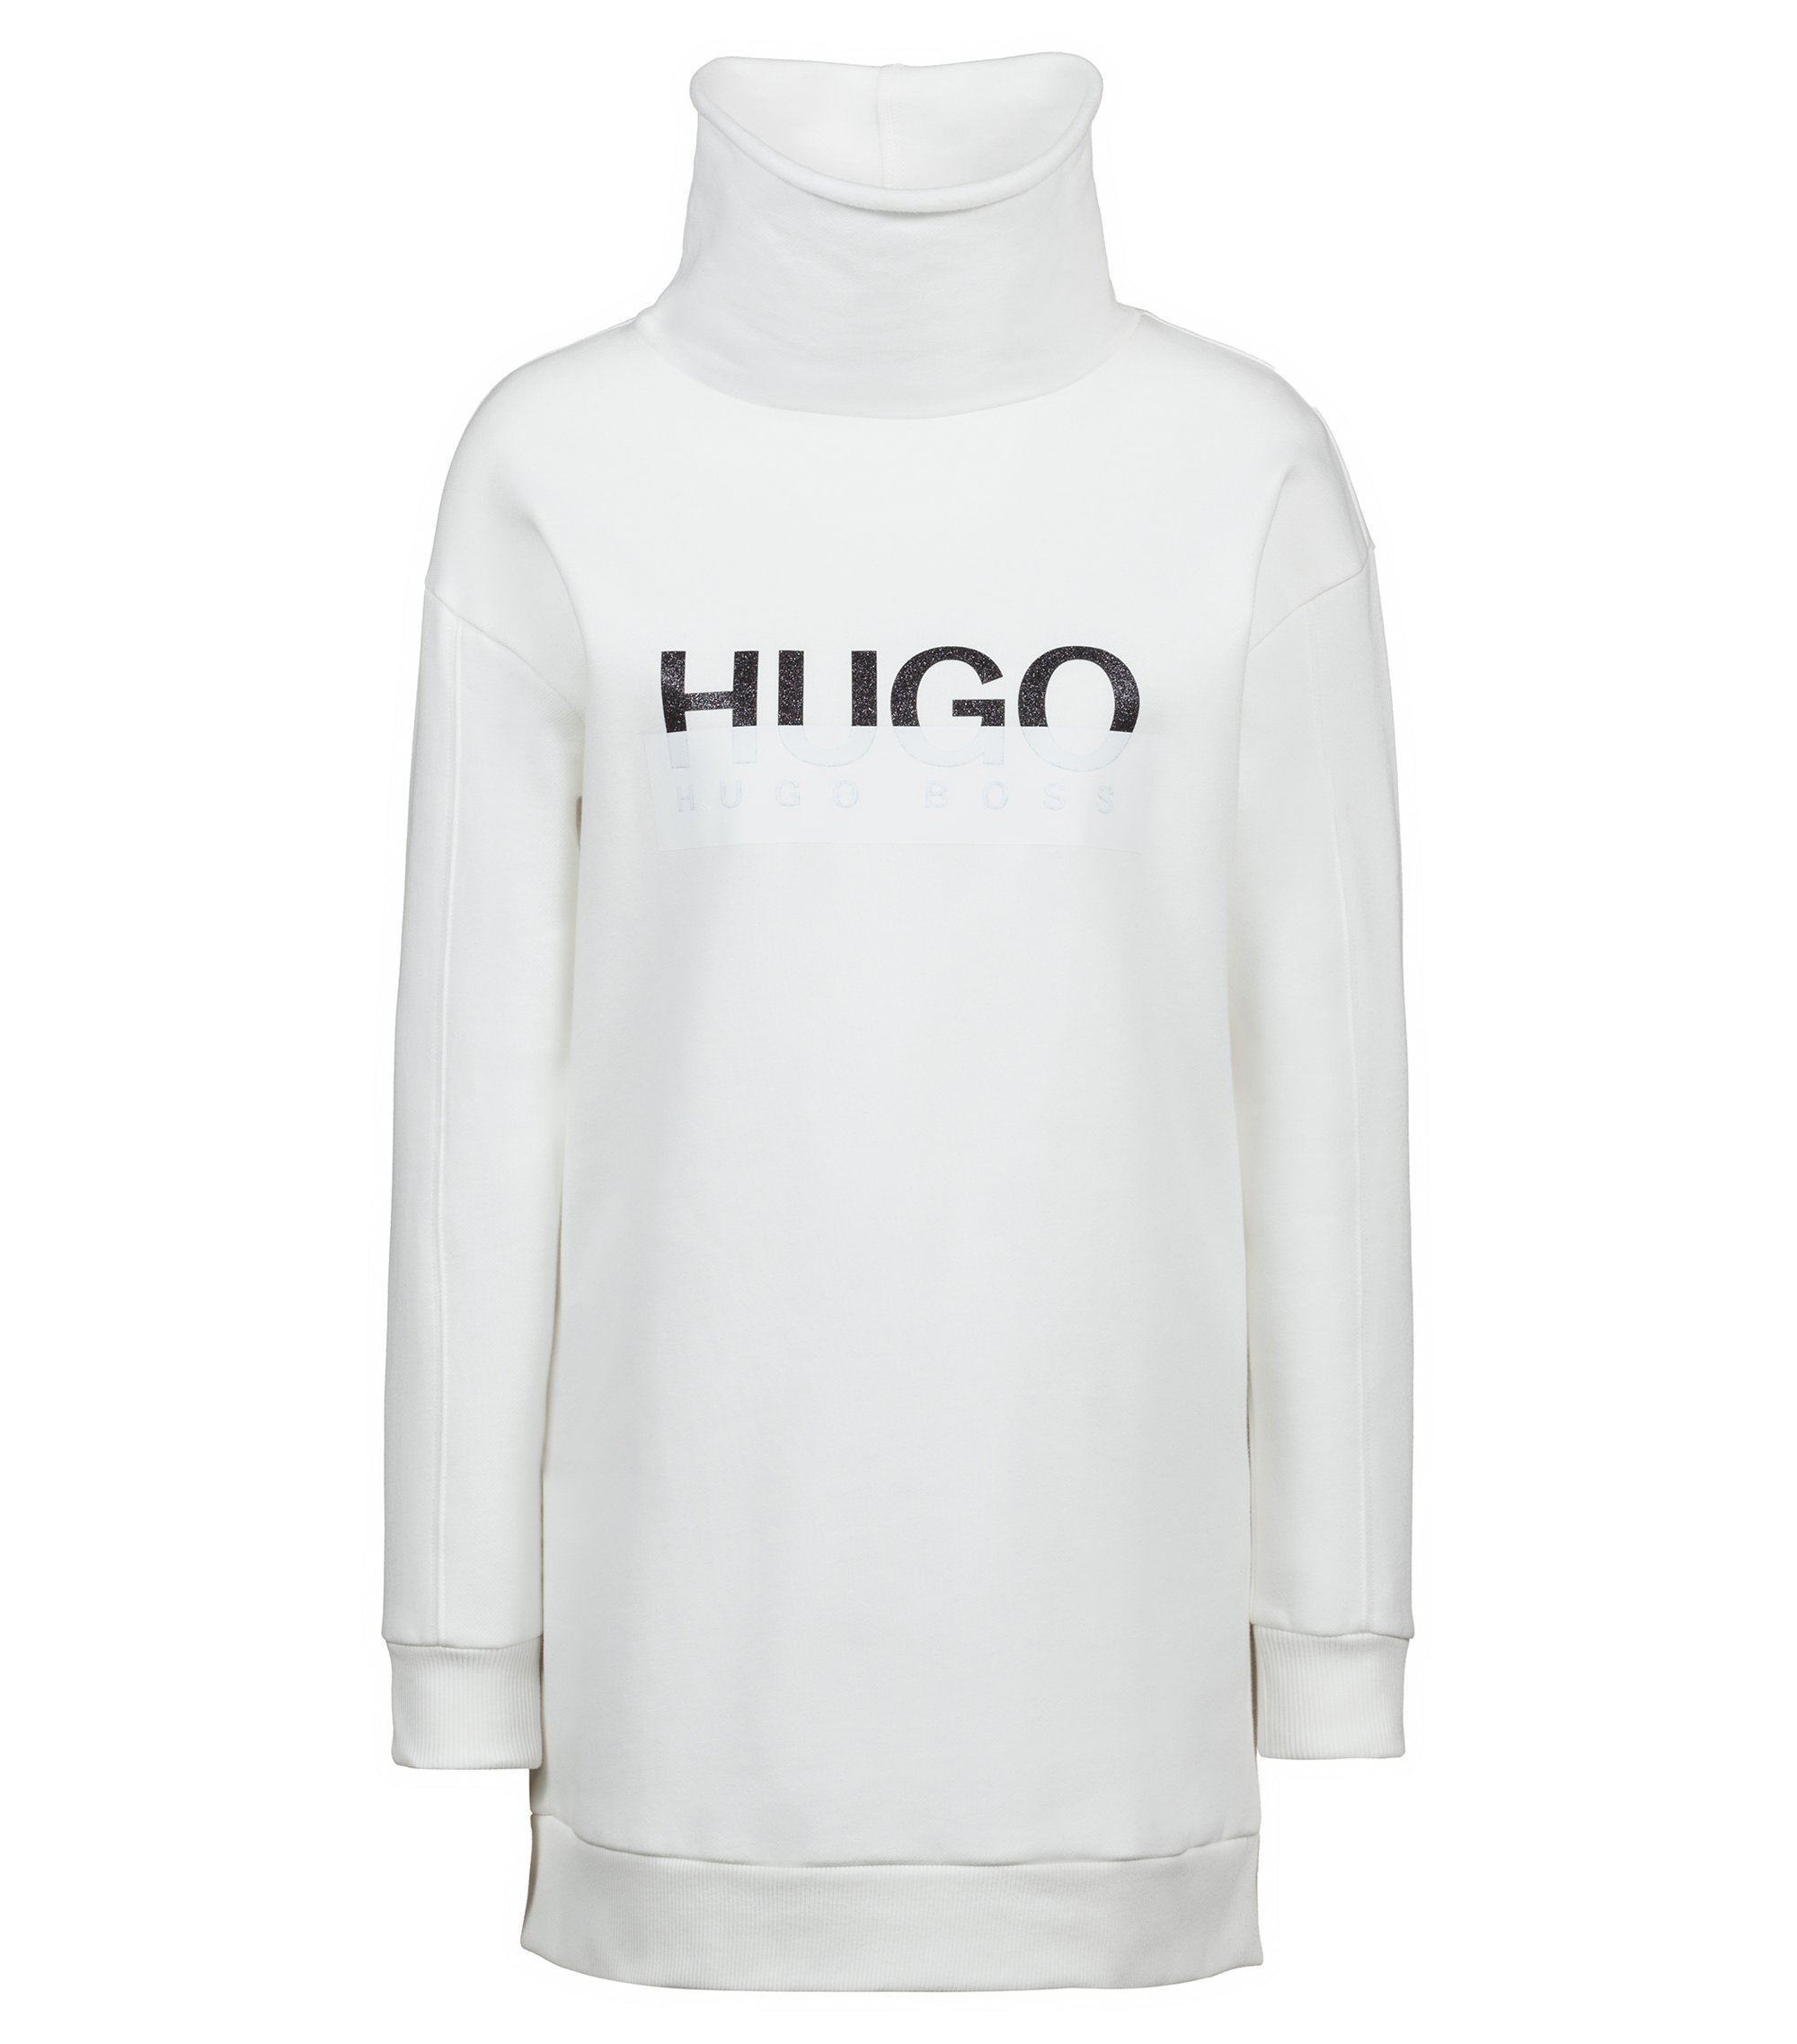 Sweat Oversized Fit en coton avec logo bicolore, Chair